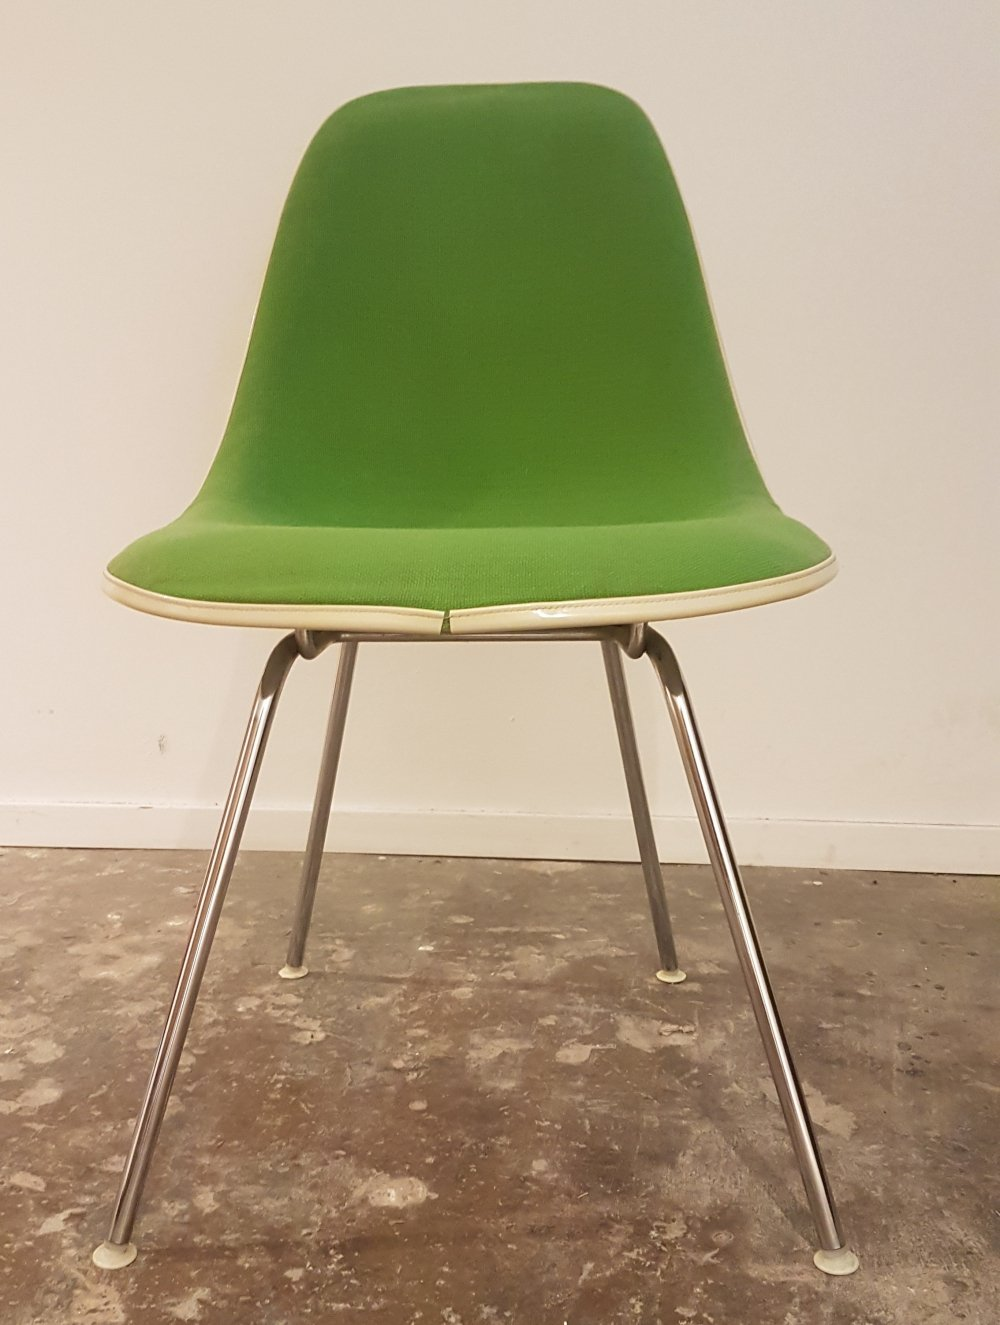 Vintage DSX chair in fiberglass & hopsack by Charles & Ray Eames for Herman Miller